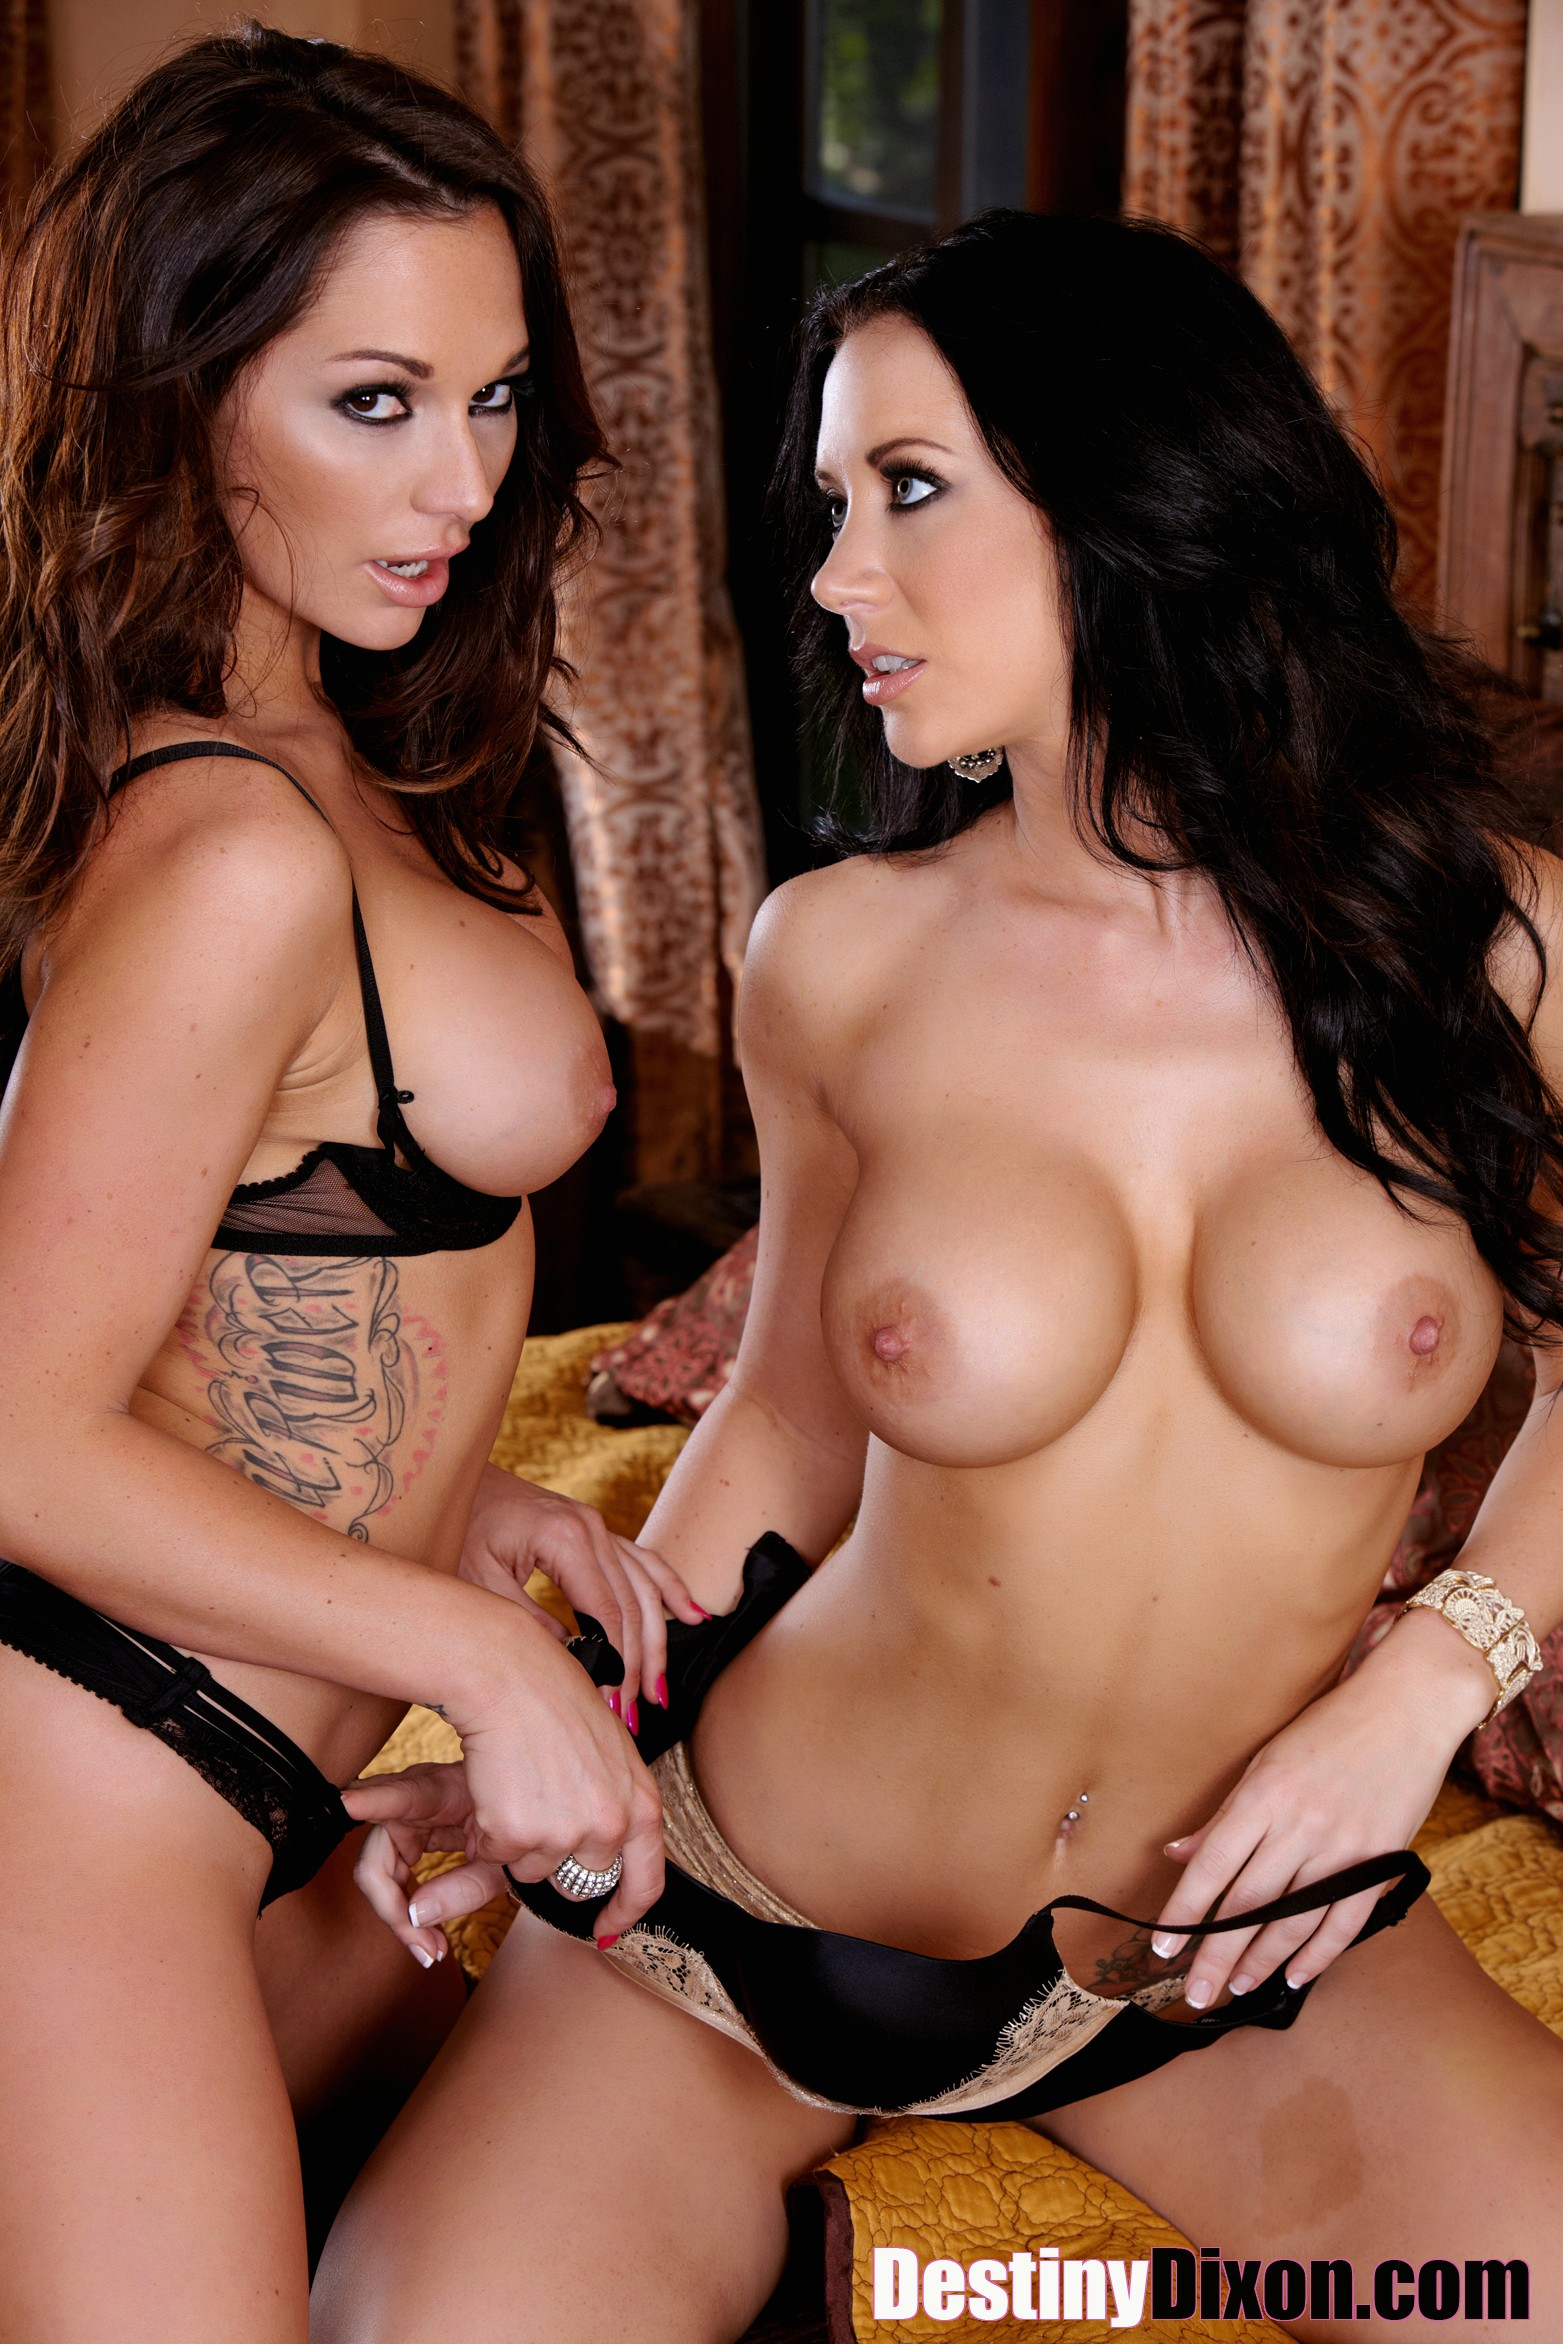 Opinion Free jayden jaymes porn think, that